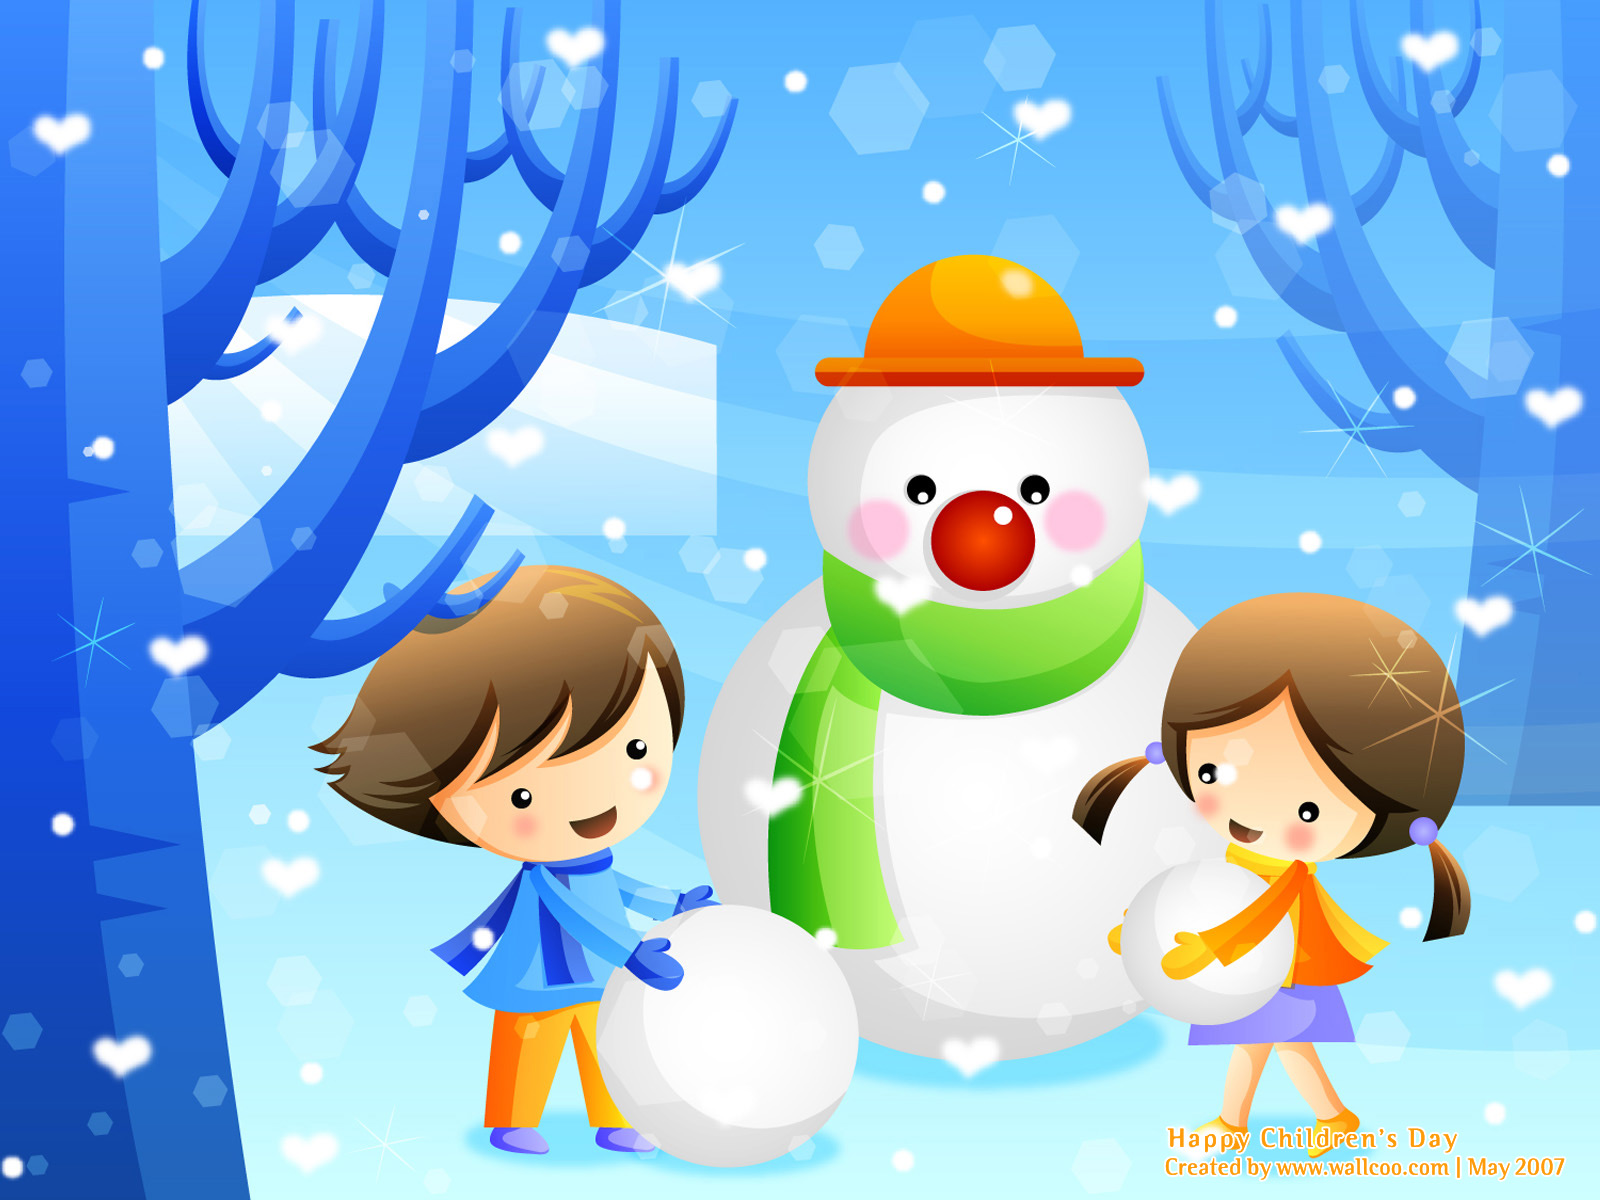 Colourful Illustrations for Childrens Day 16001200 NO12 Wallpaper 1600x1200